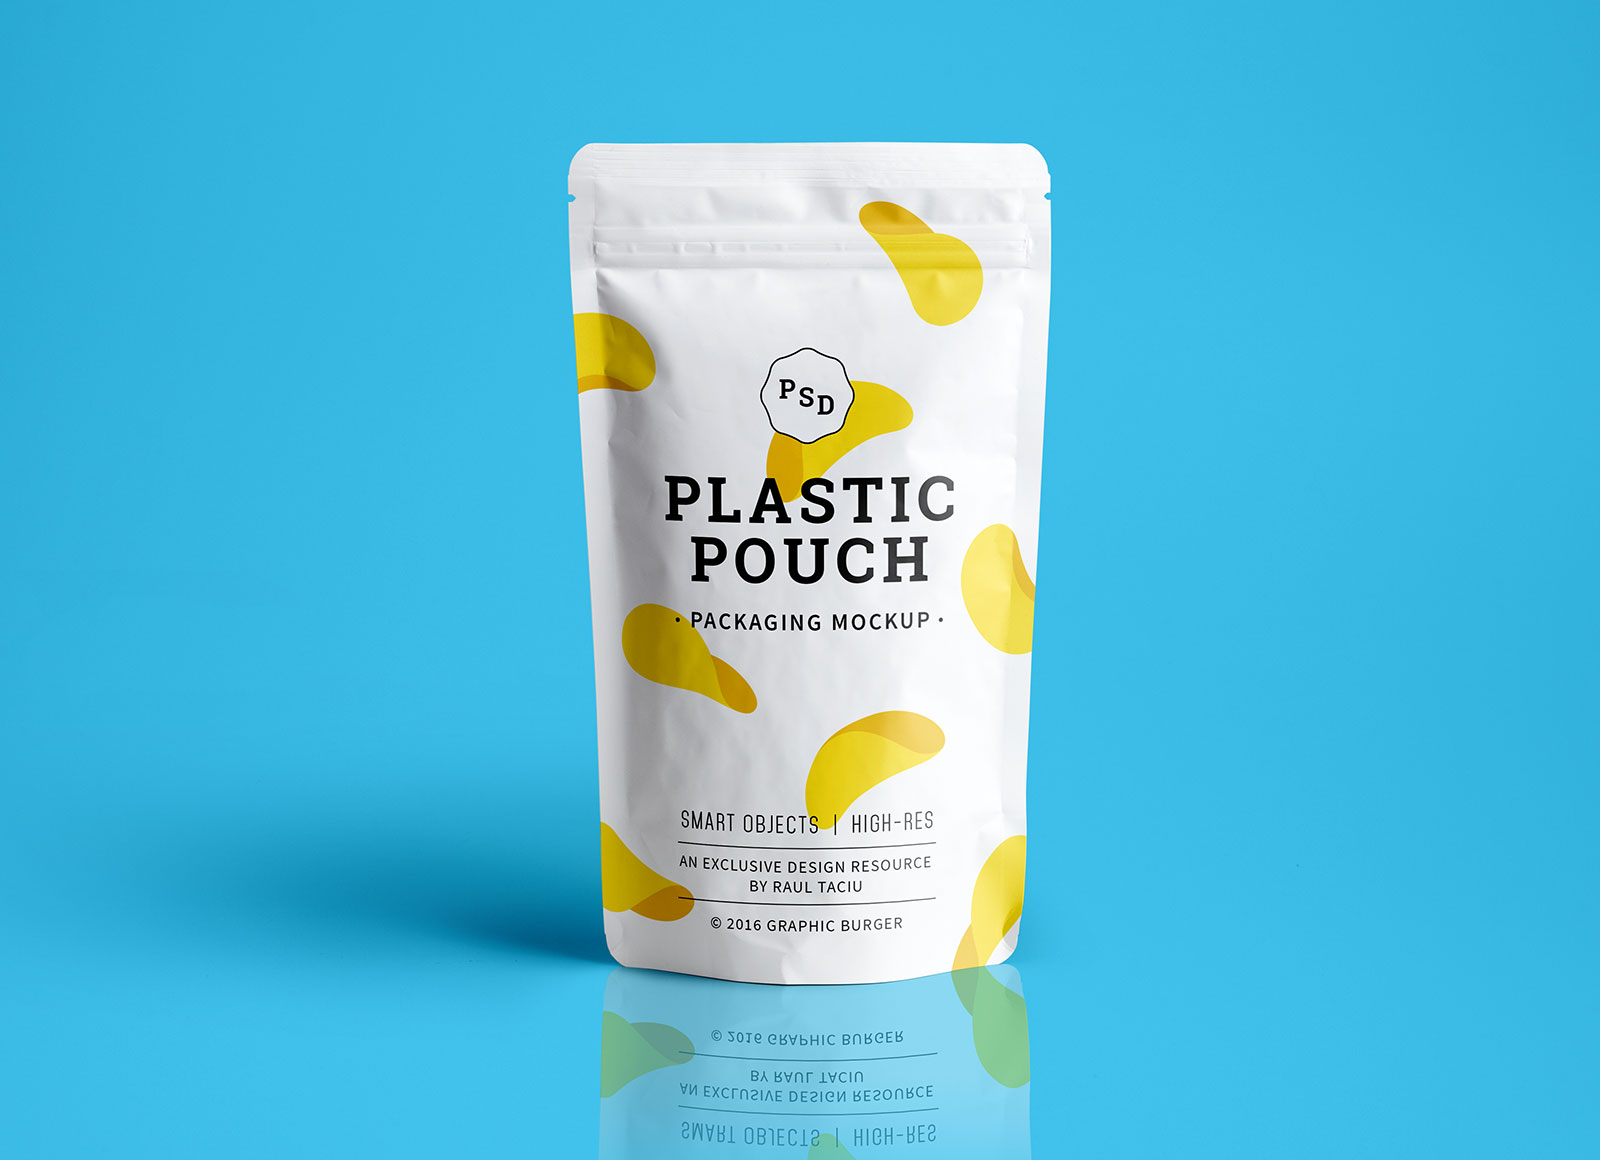 Subscribe to envato elements for unlimited graphic templates downloads for a single monthly fee. Free Standing Plastic Pouch Packaging Mockup Psd Good Mockups